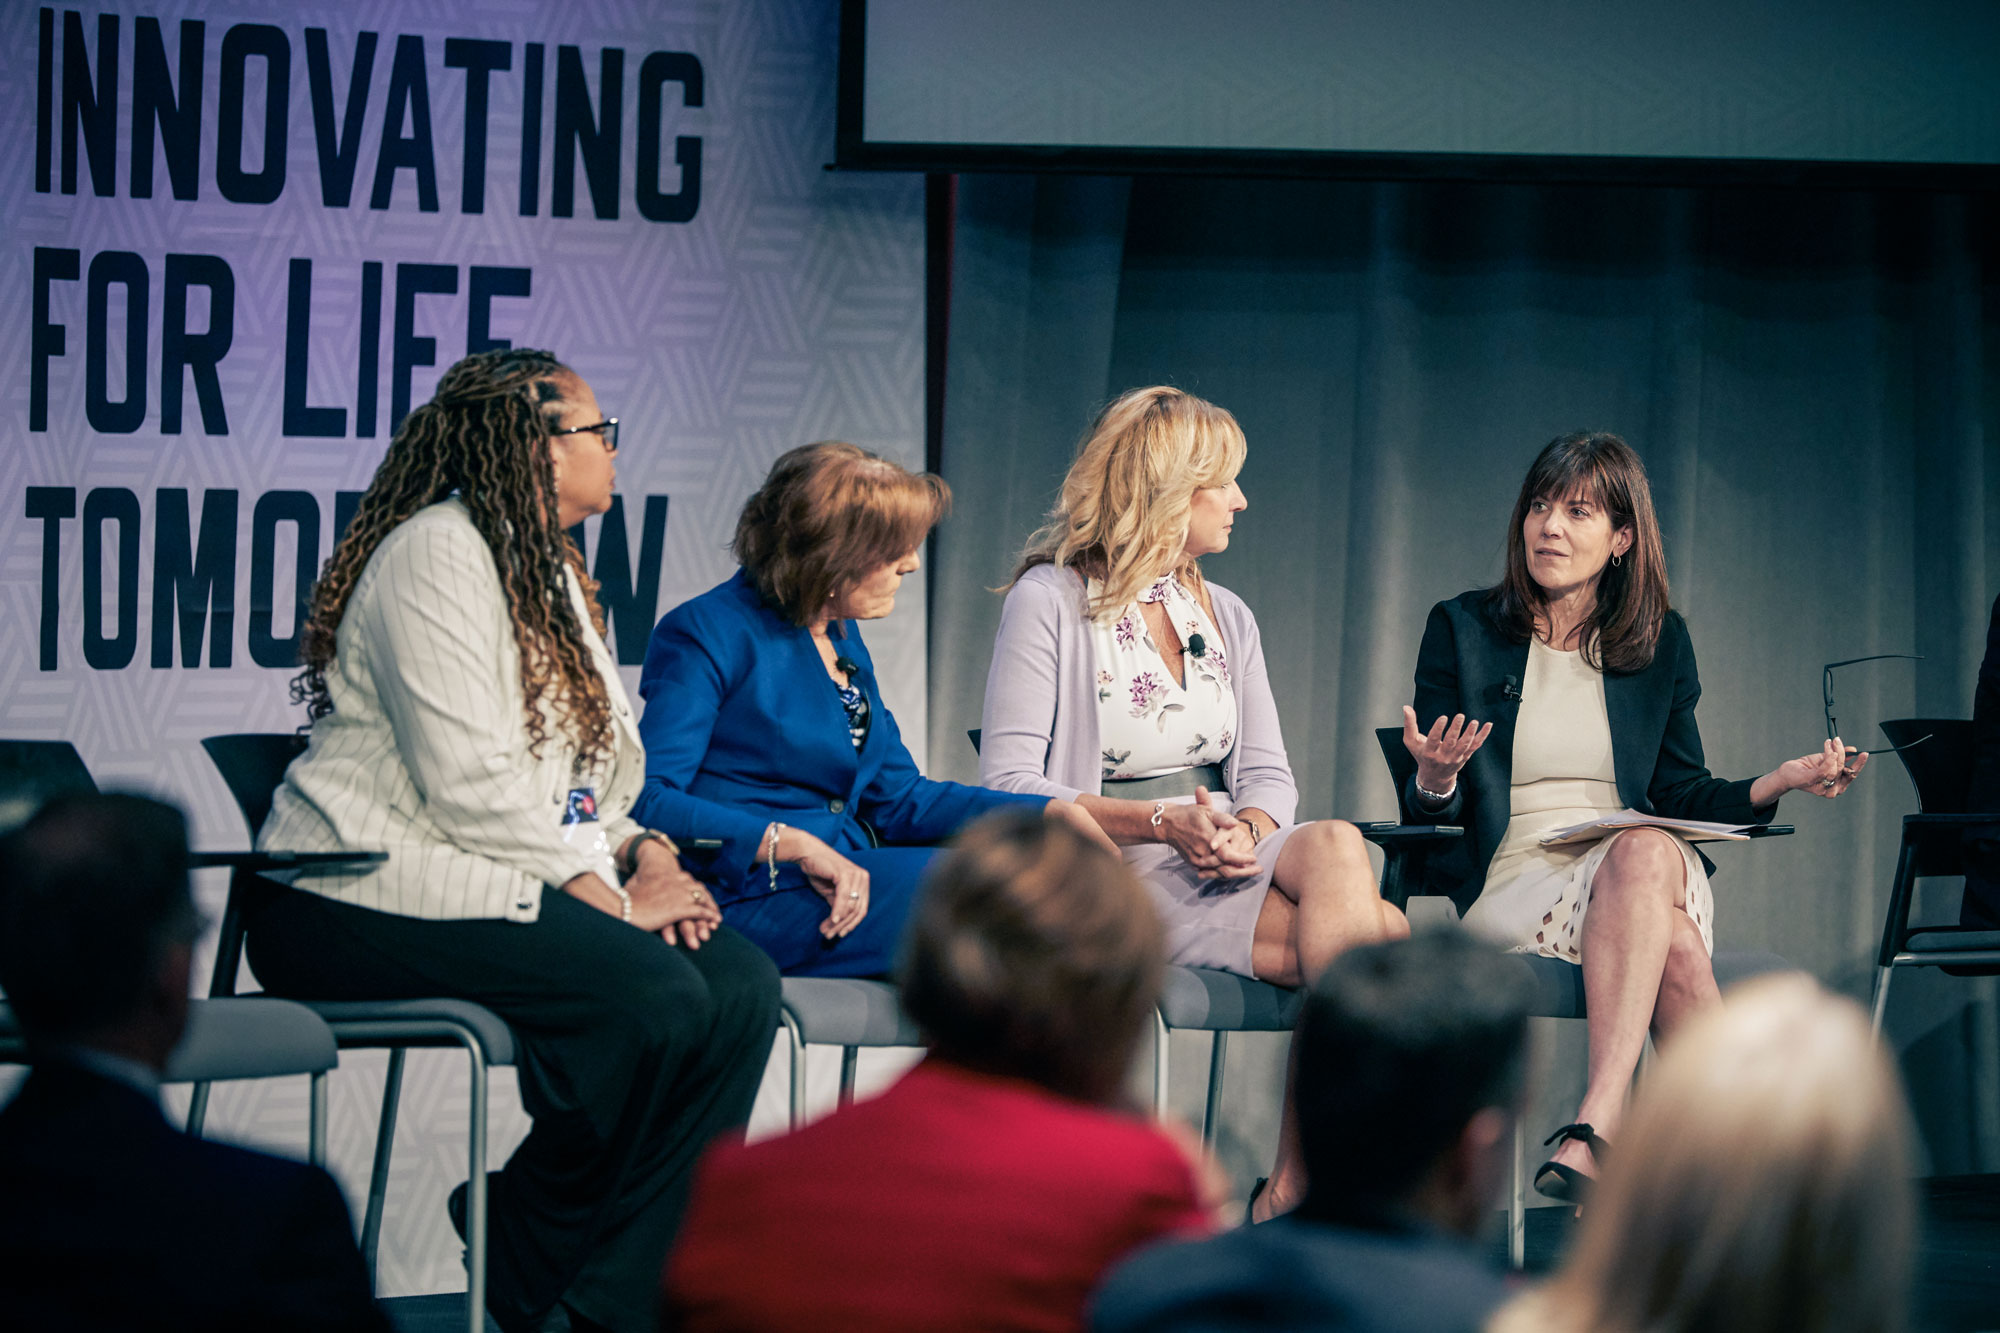 4 women sit in chairs on a stage and one is speaking while the others look toward her